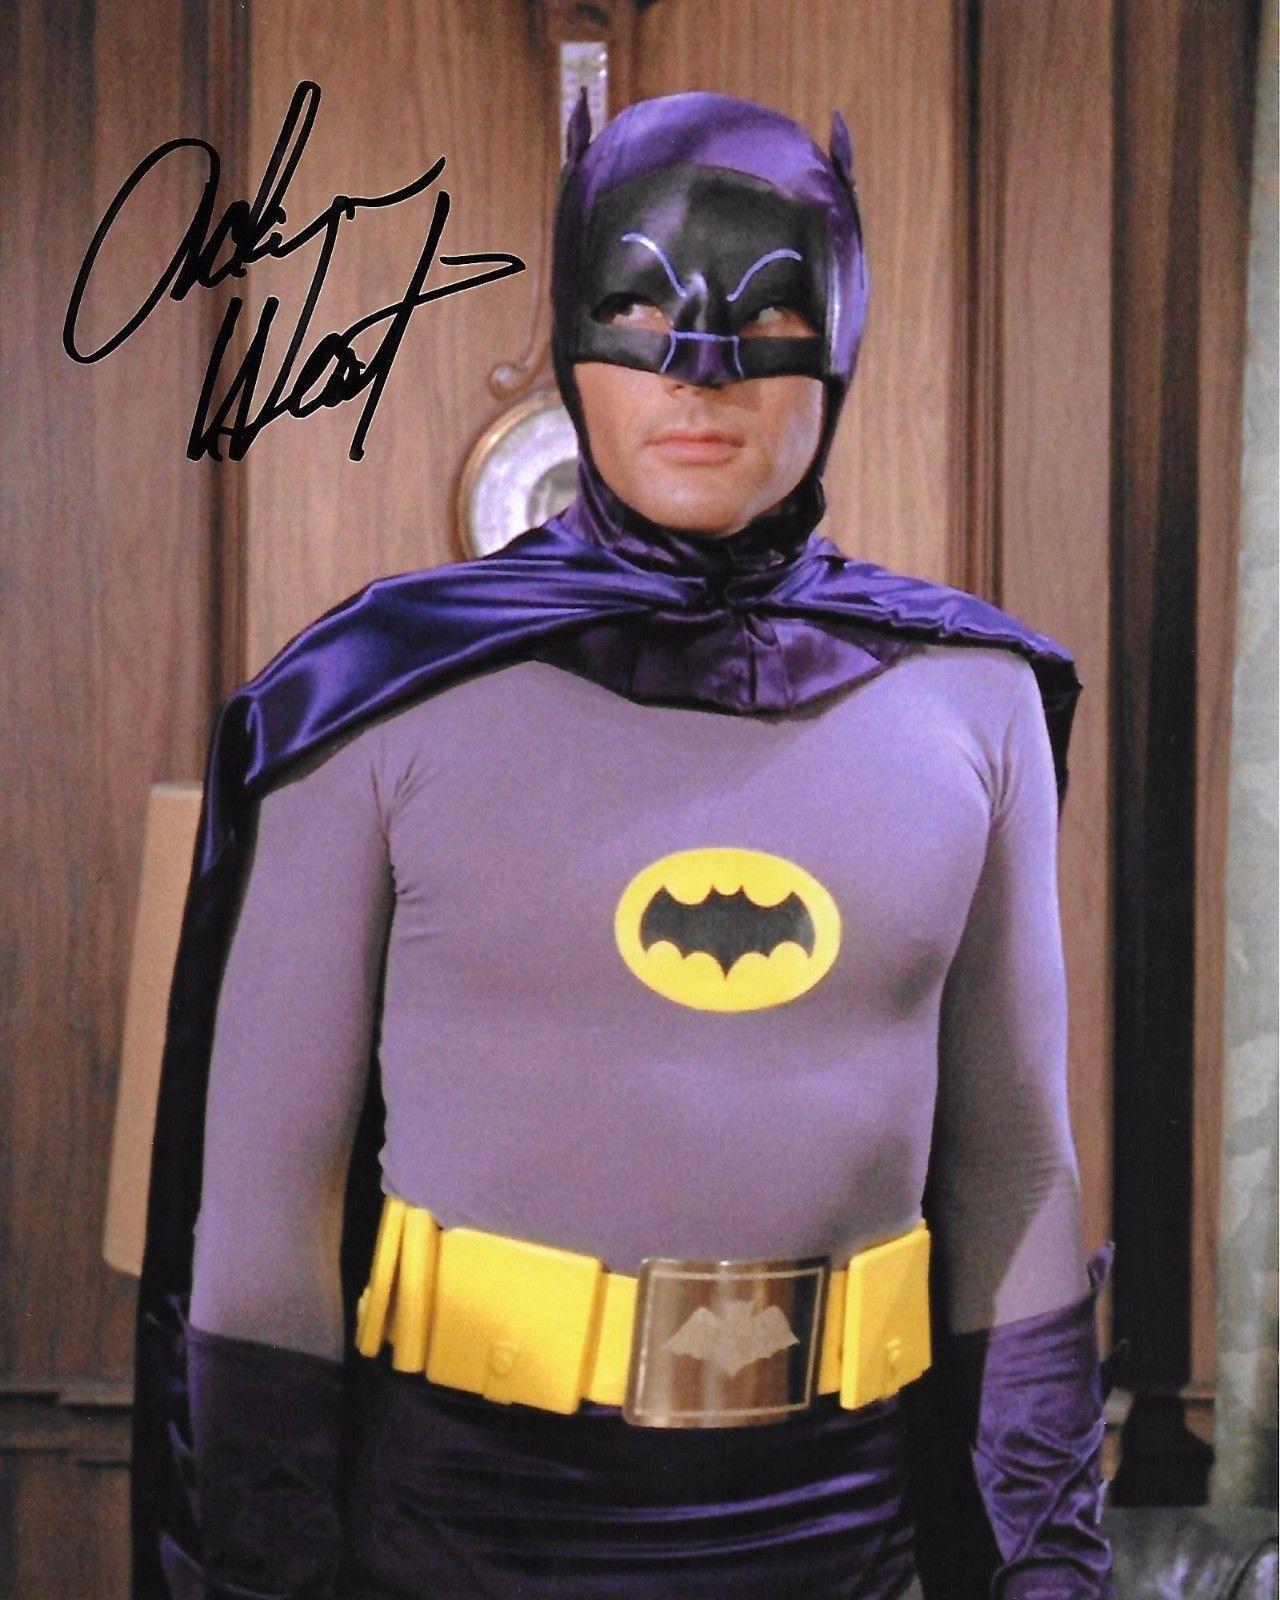 Without Return Adam West Signed In Person At Our Hollywoodshow April 28th 2017 8x10 Batman!! Movies